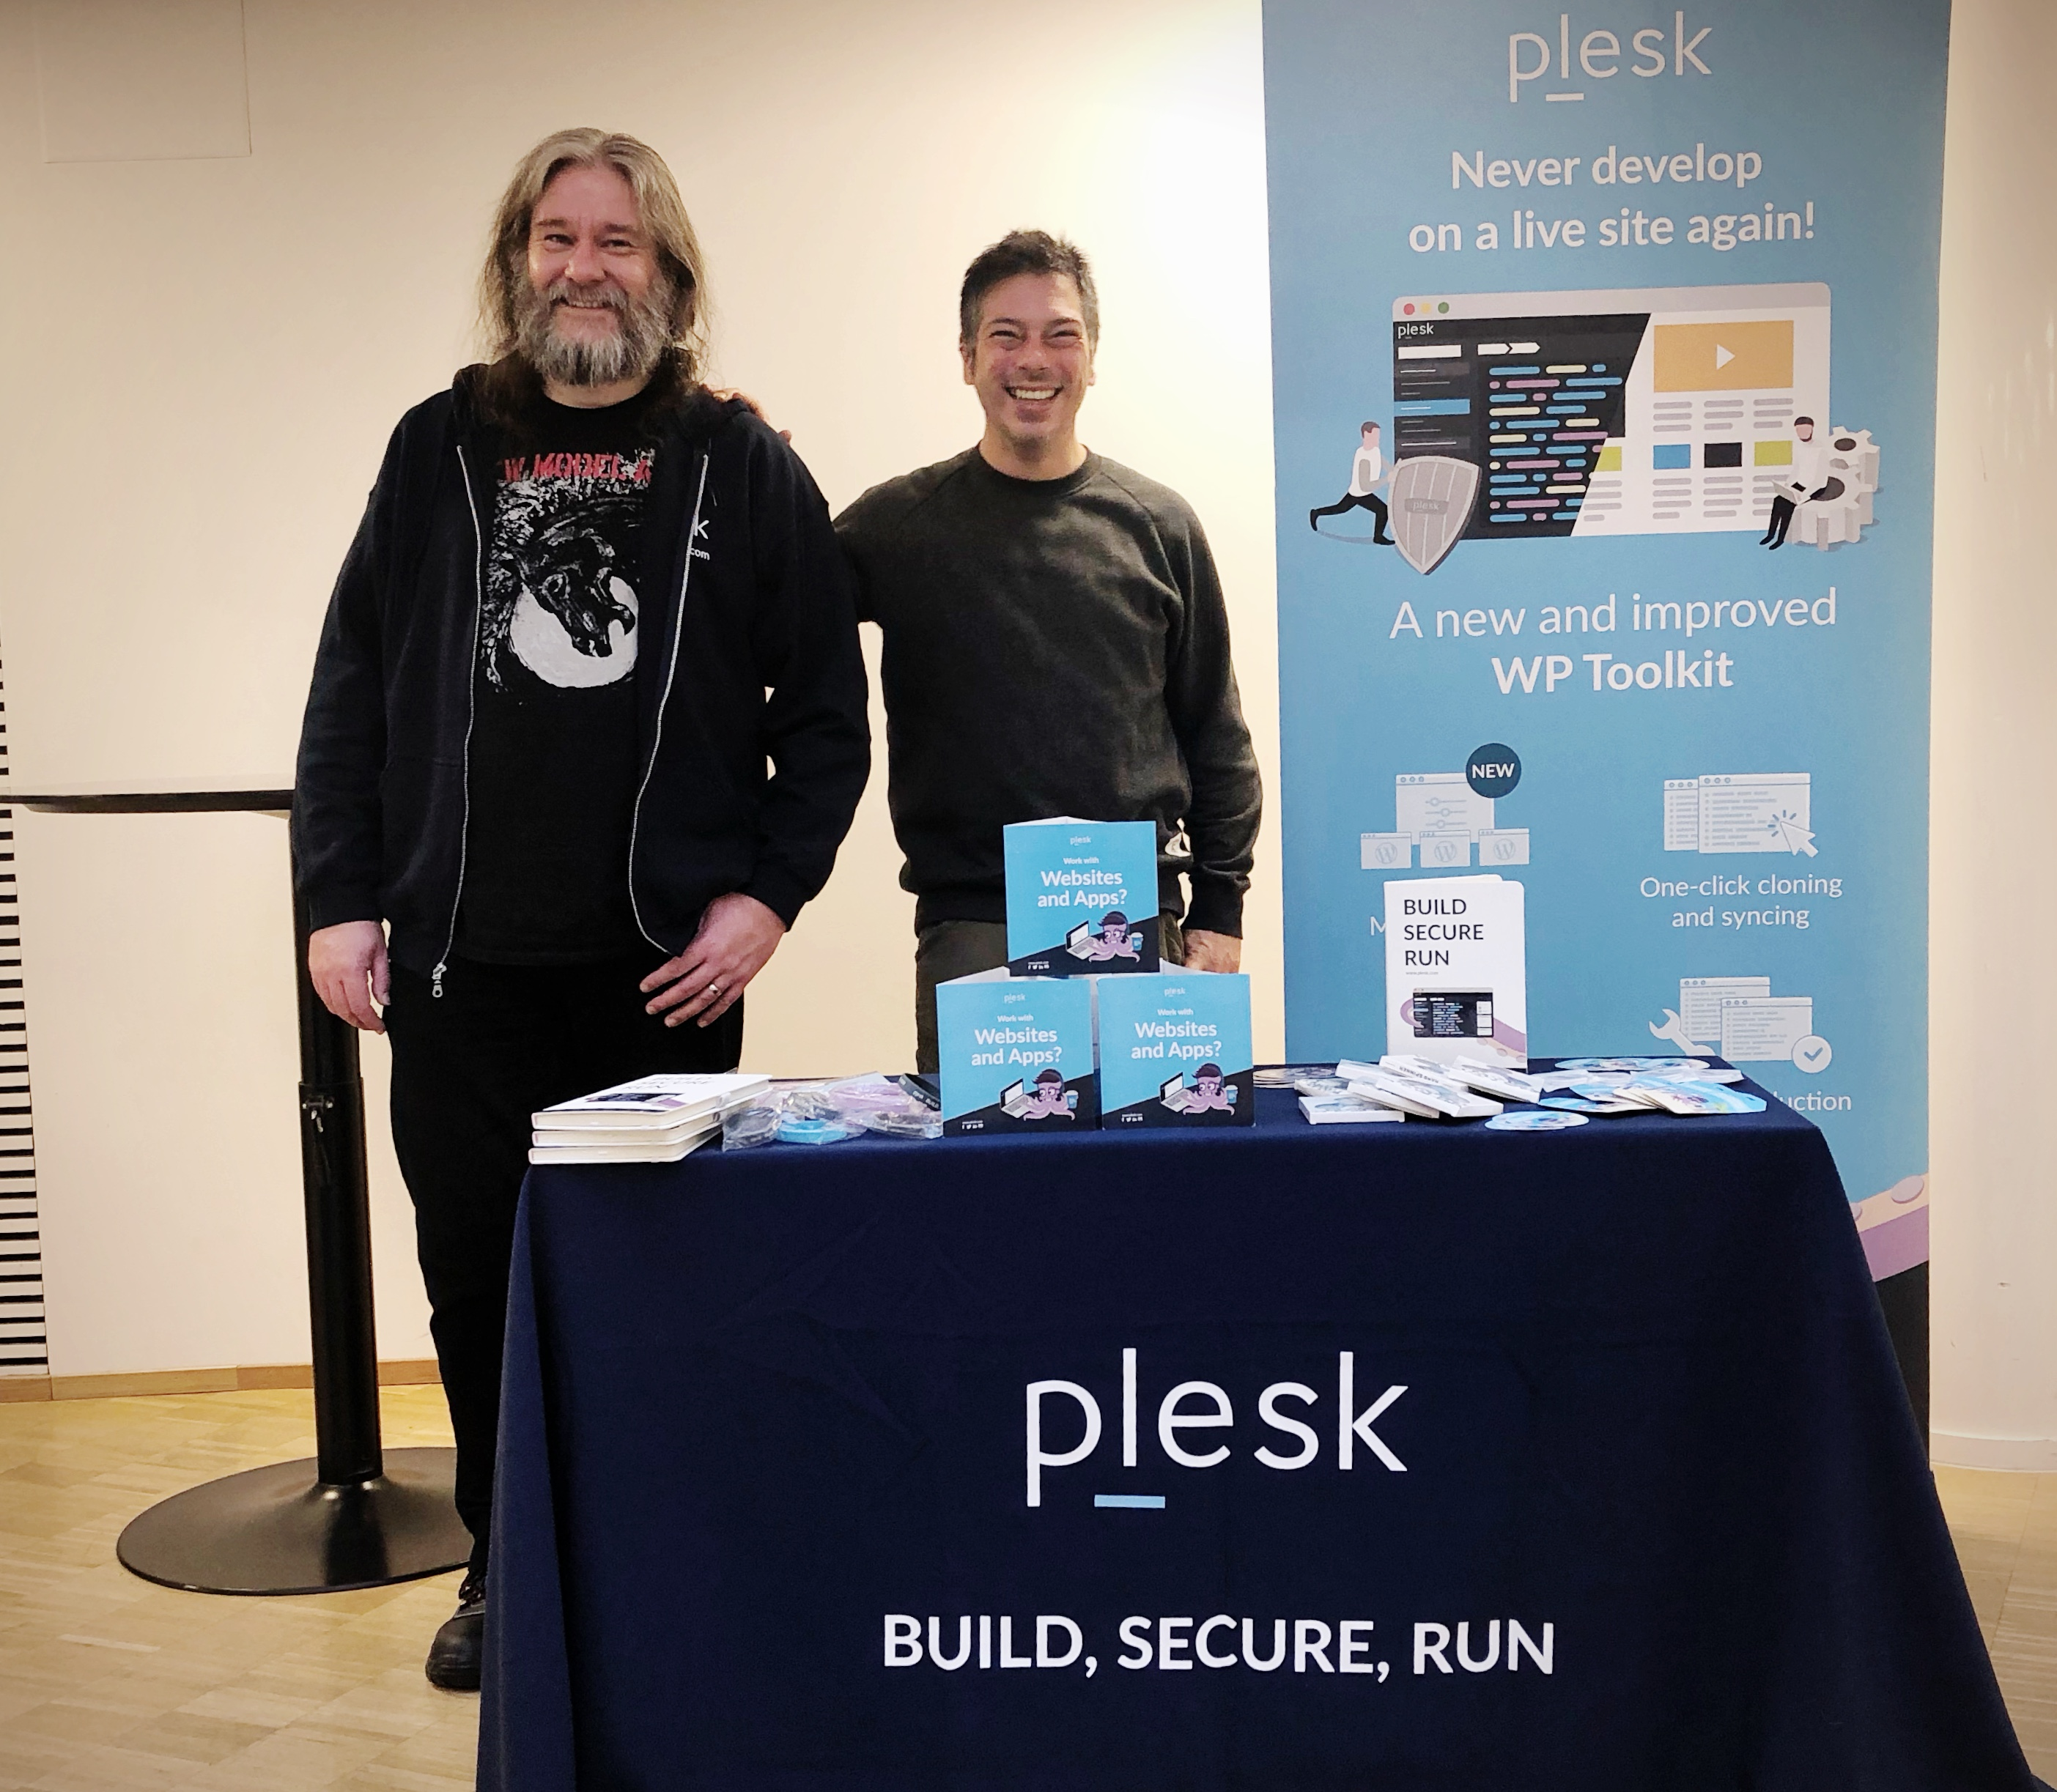 Plesk at WordCamp Nordic - booth - support engineers, Francisco and Robert